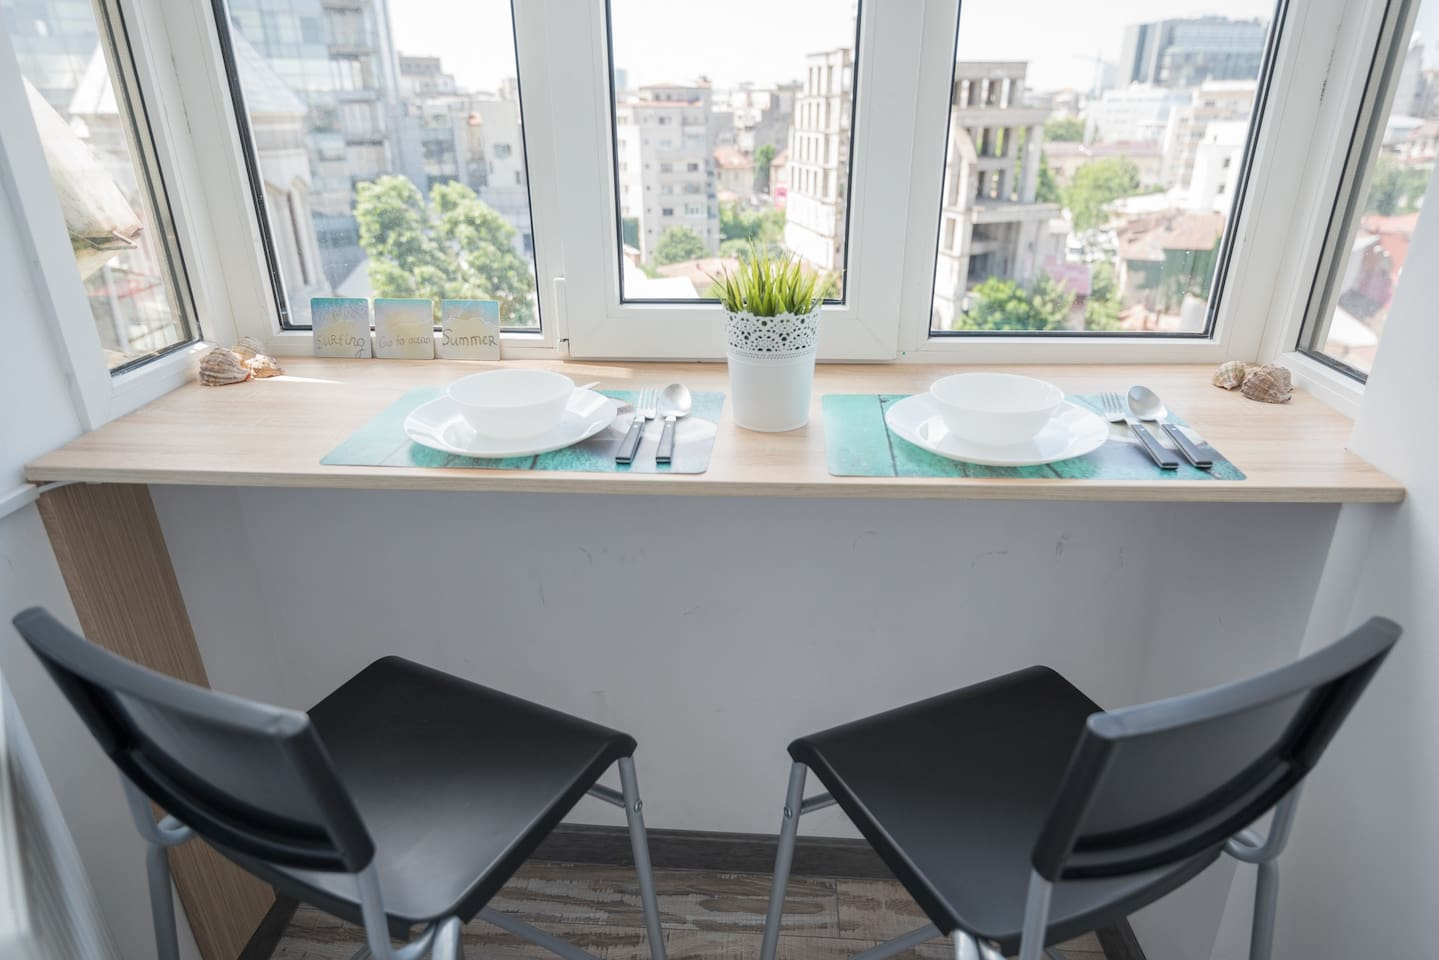 Dining table with a beautiful view